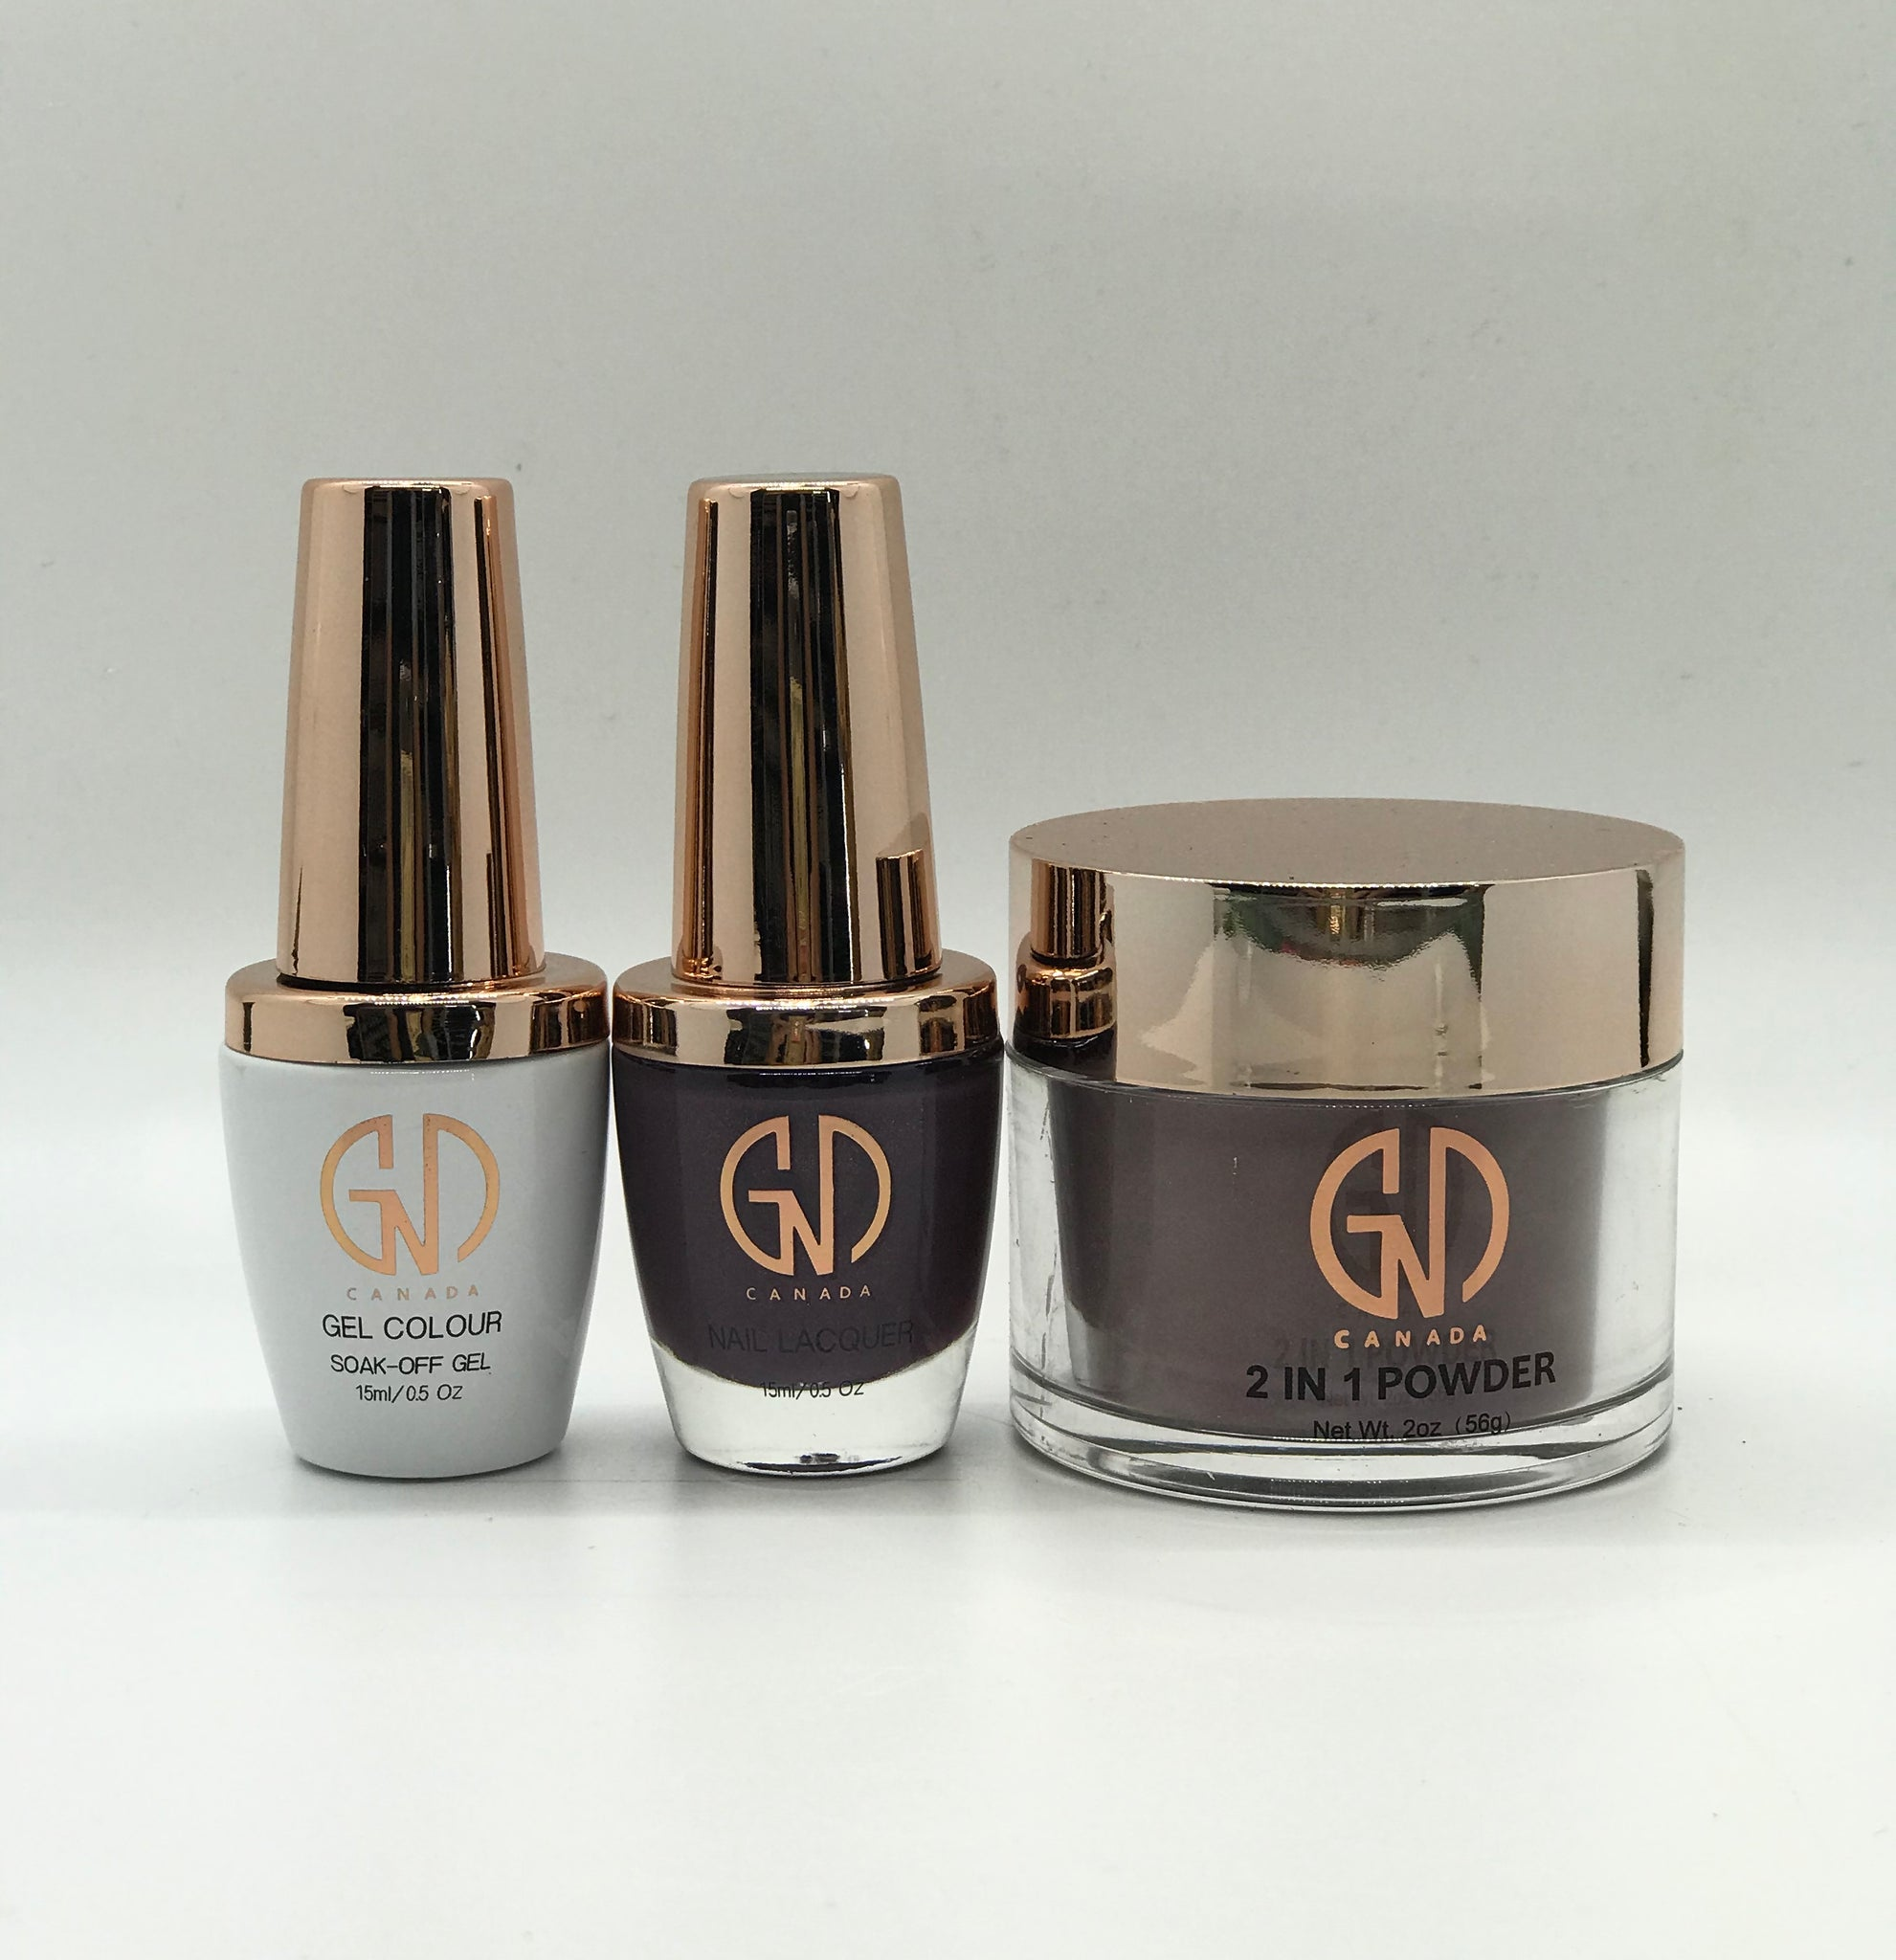 3-in-1 Nail Combo: Dip, Gel & Lacquer #202 GND Canada® - CM Nails & Beauty Supply